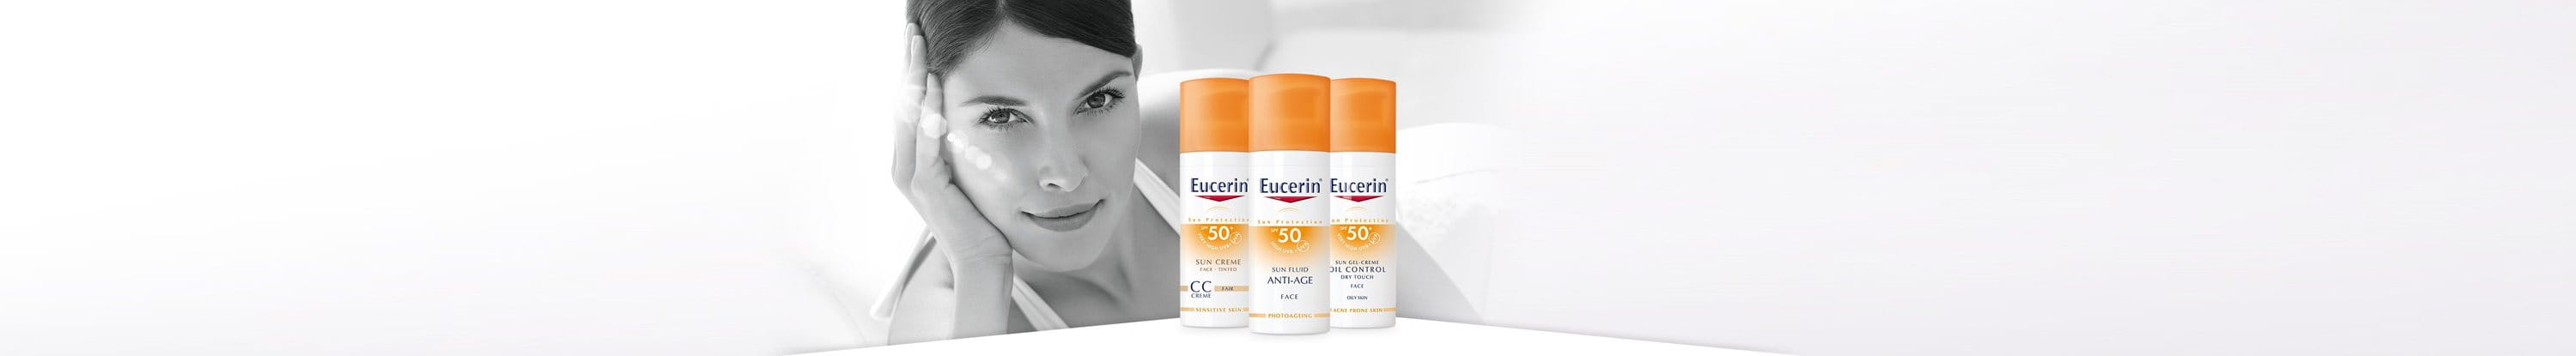 Sunscreen - give skin the protection it needs